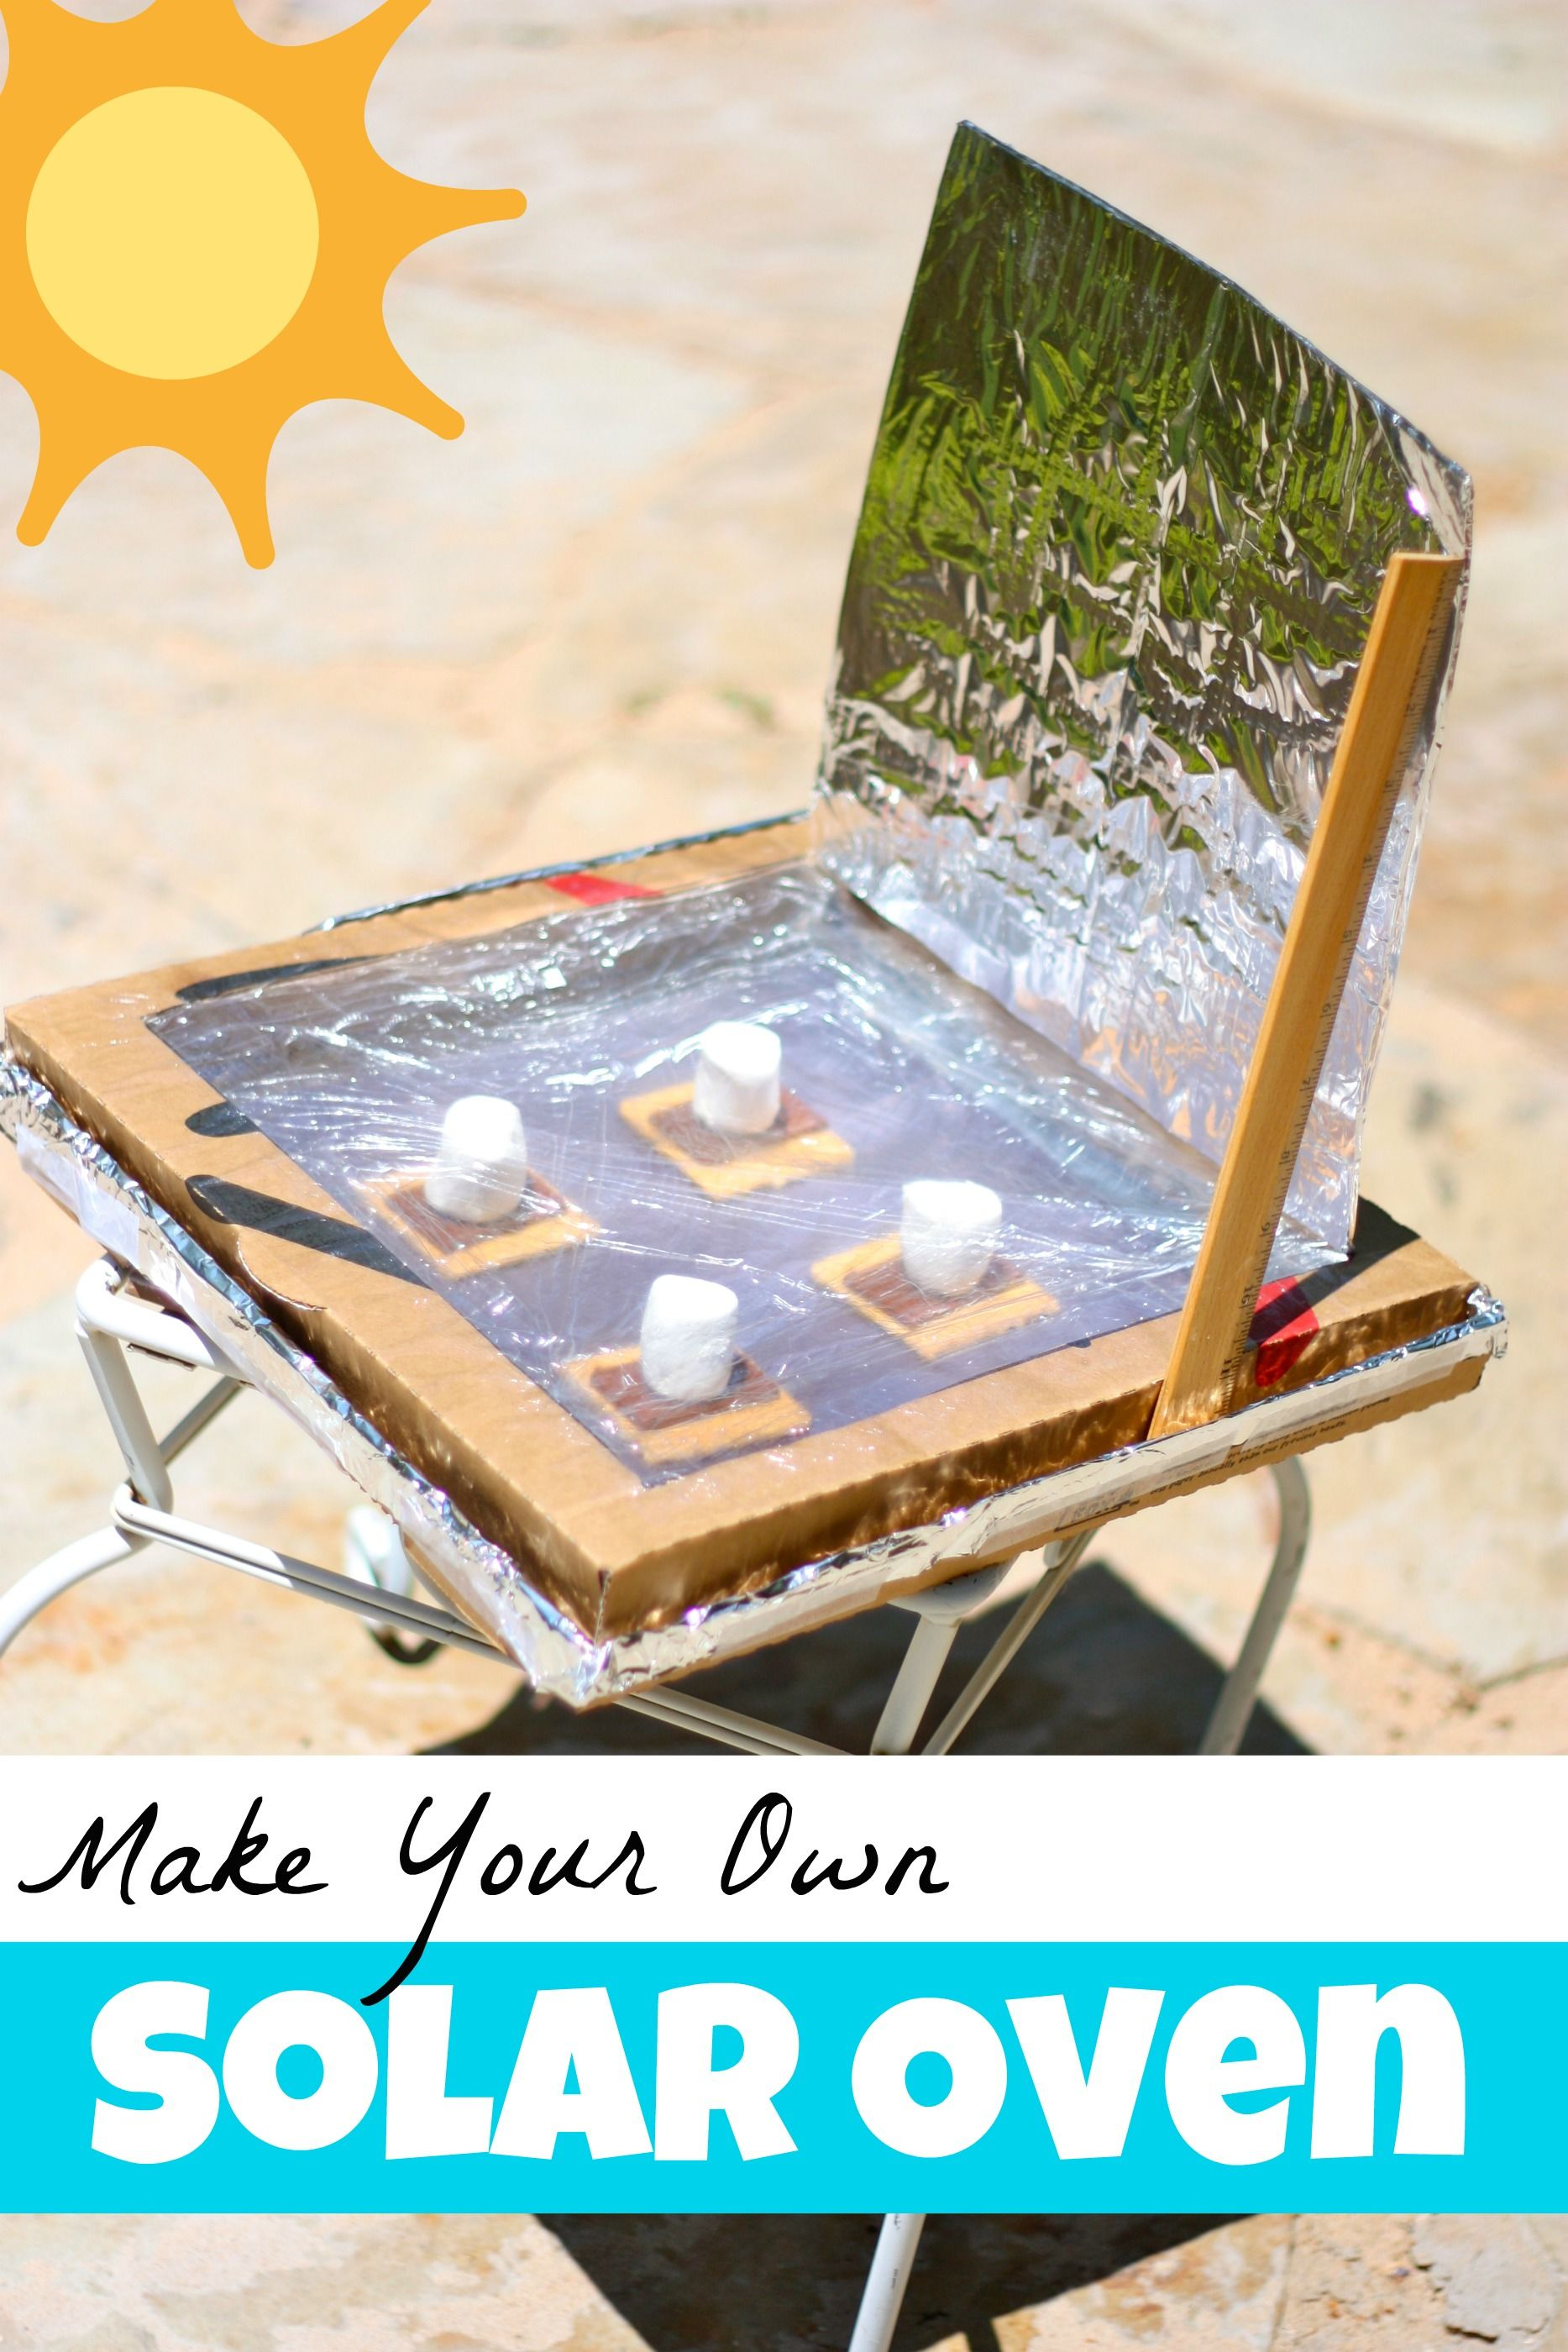 make your own solar oven science experiments fun